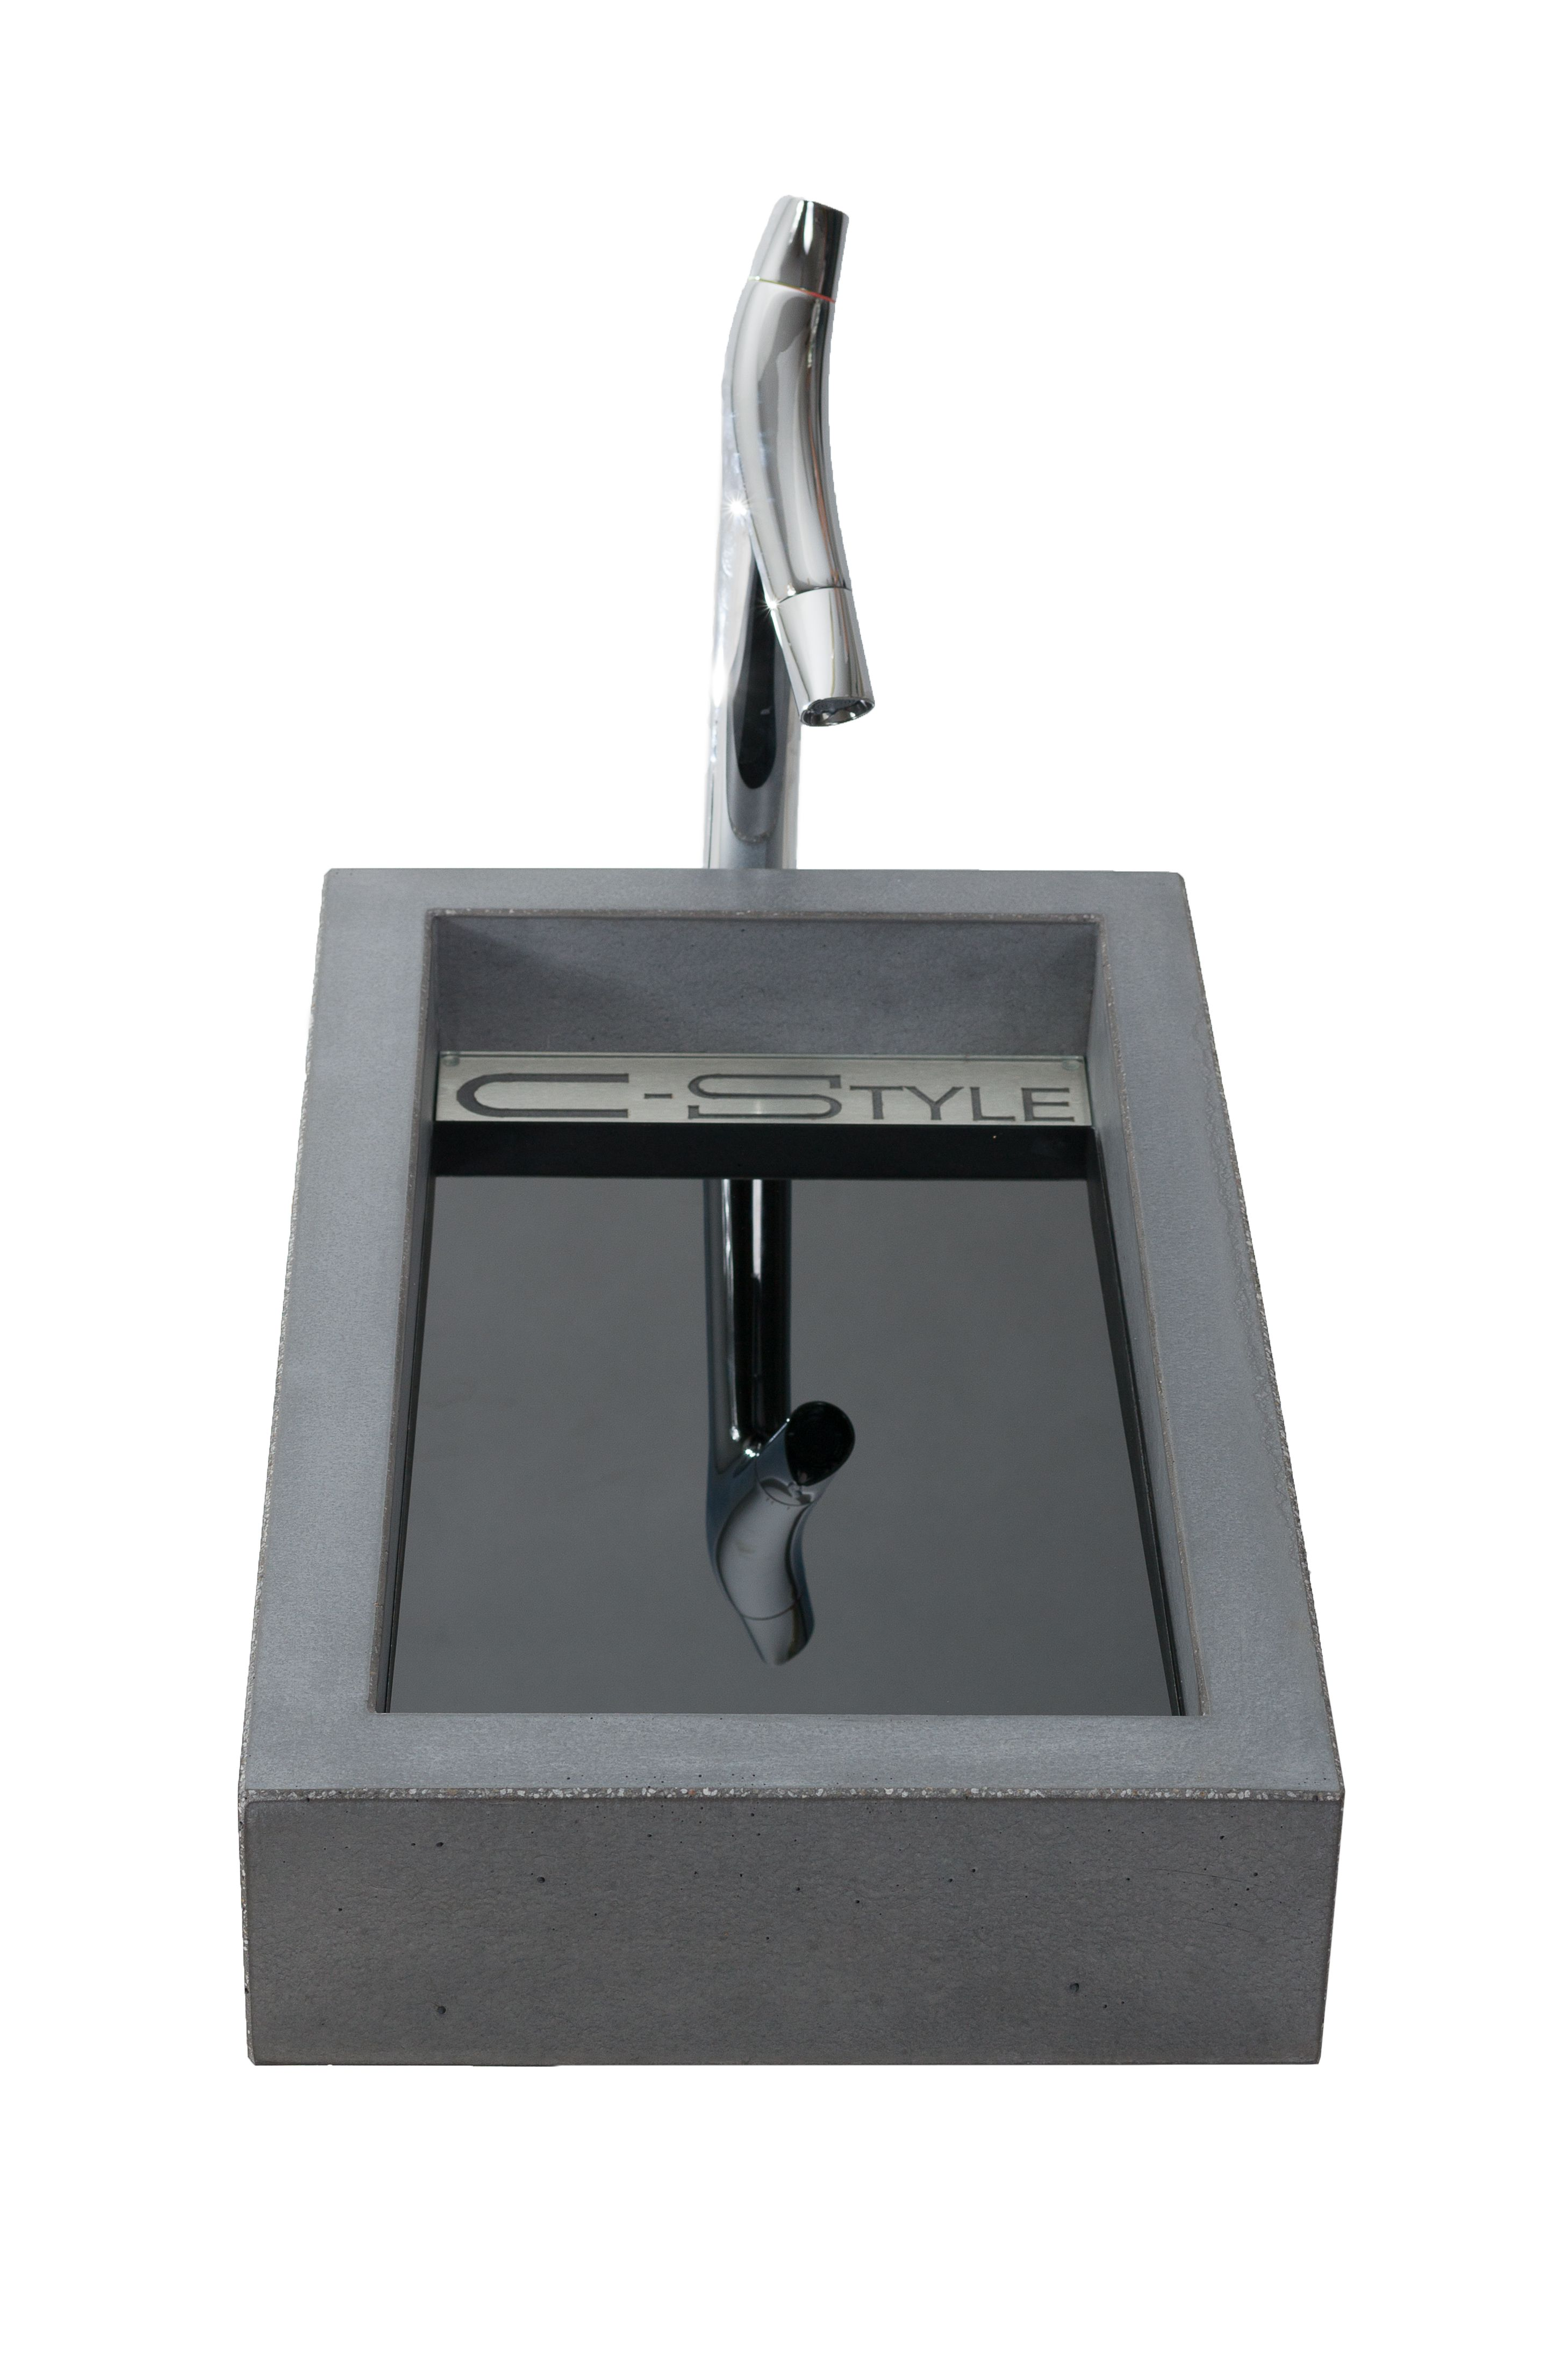 VEKTOR – Minimalist style counter top basin with hidden drain. Produced with a broad selection of glass and metal inlays.  Size: L:70cm W:40cm H:12cm